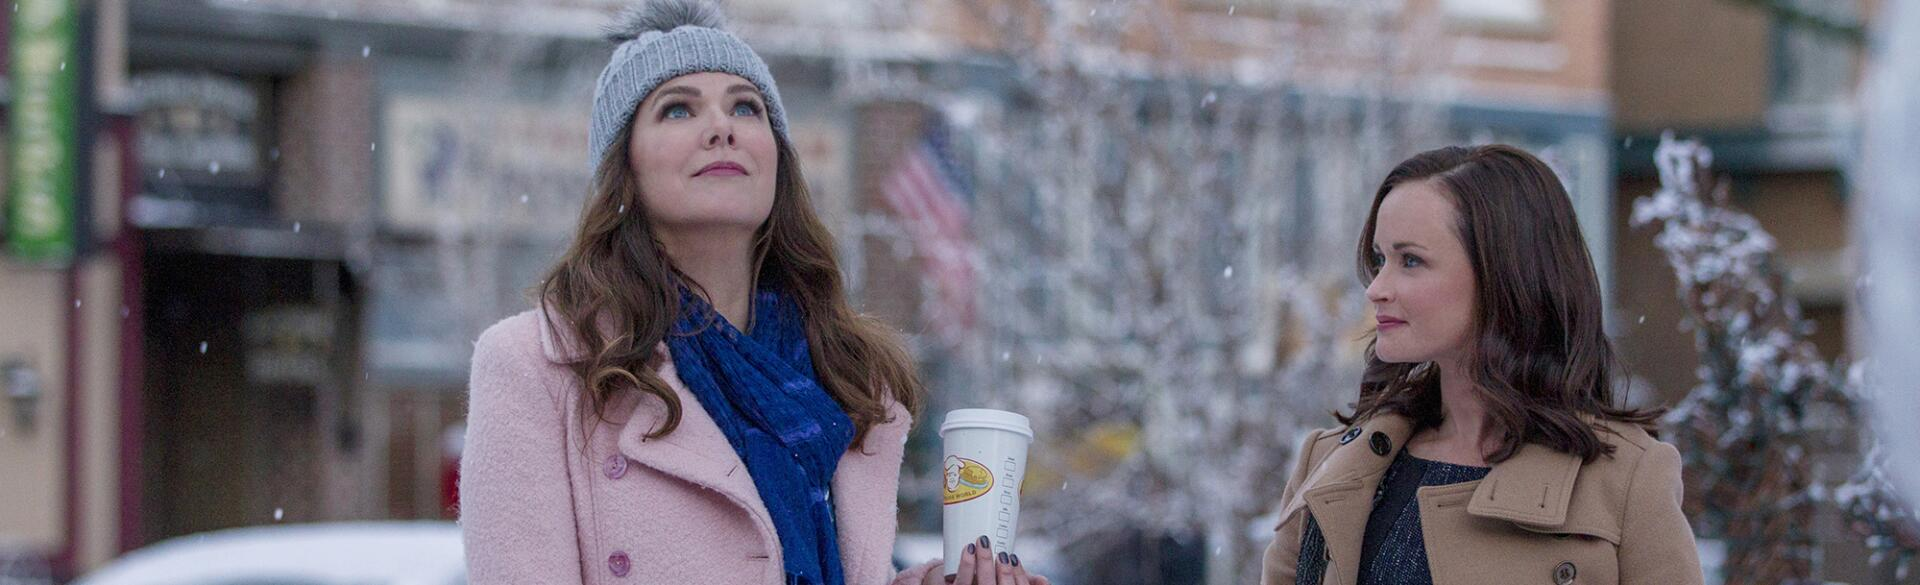 main characters from Gilmore Girls, Lorelai and Rory, outside in the snow holding coffee by a newsstand